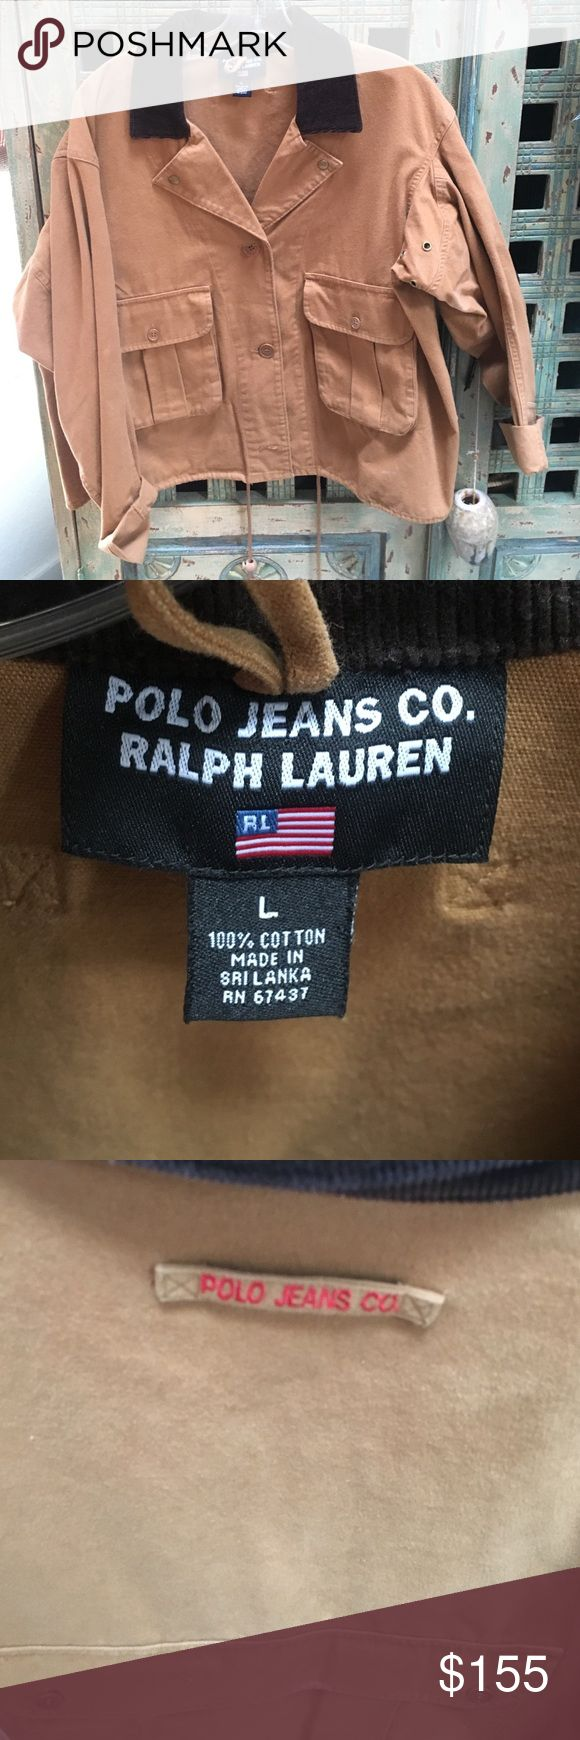 Polo jeans Co. Ralph Lauren Jacket. *Rare* Vintage•pristine quality•Polo Jeans Co. Ralph Lauren Jacket Polo by Ralph Lauren Jackets & Coats